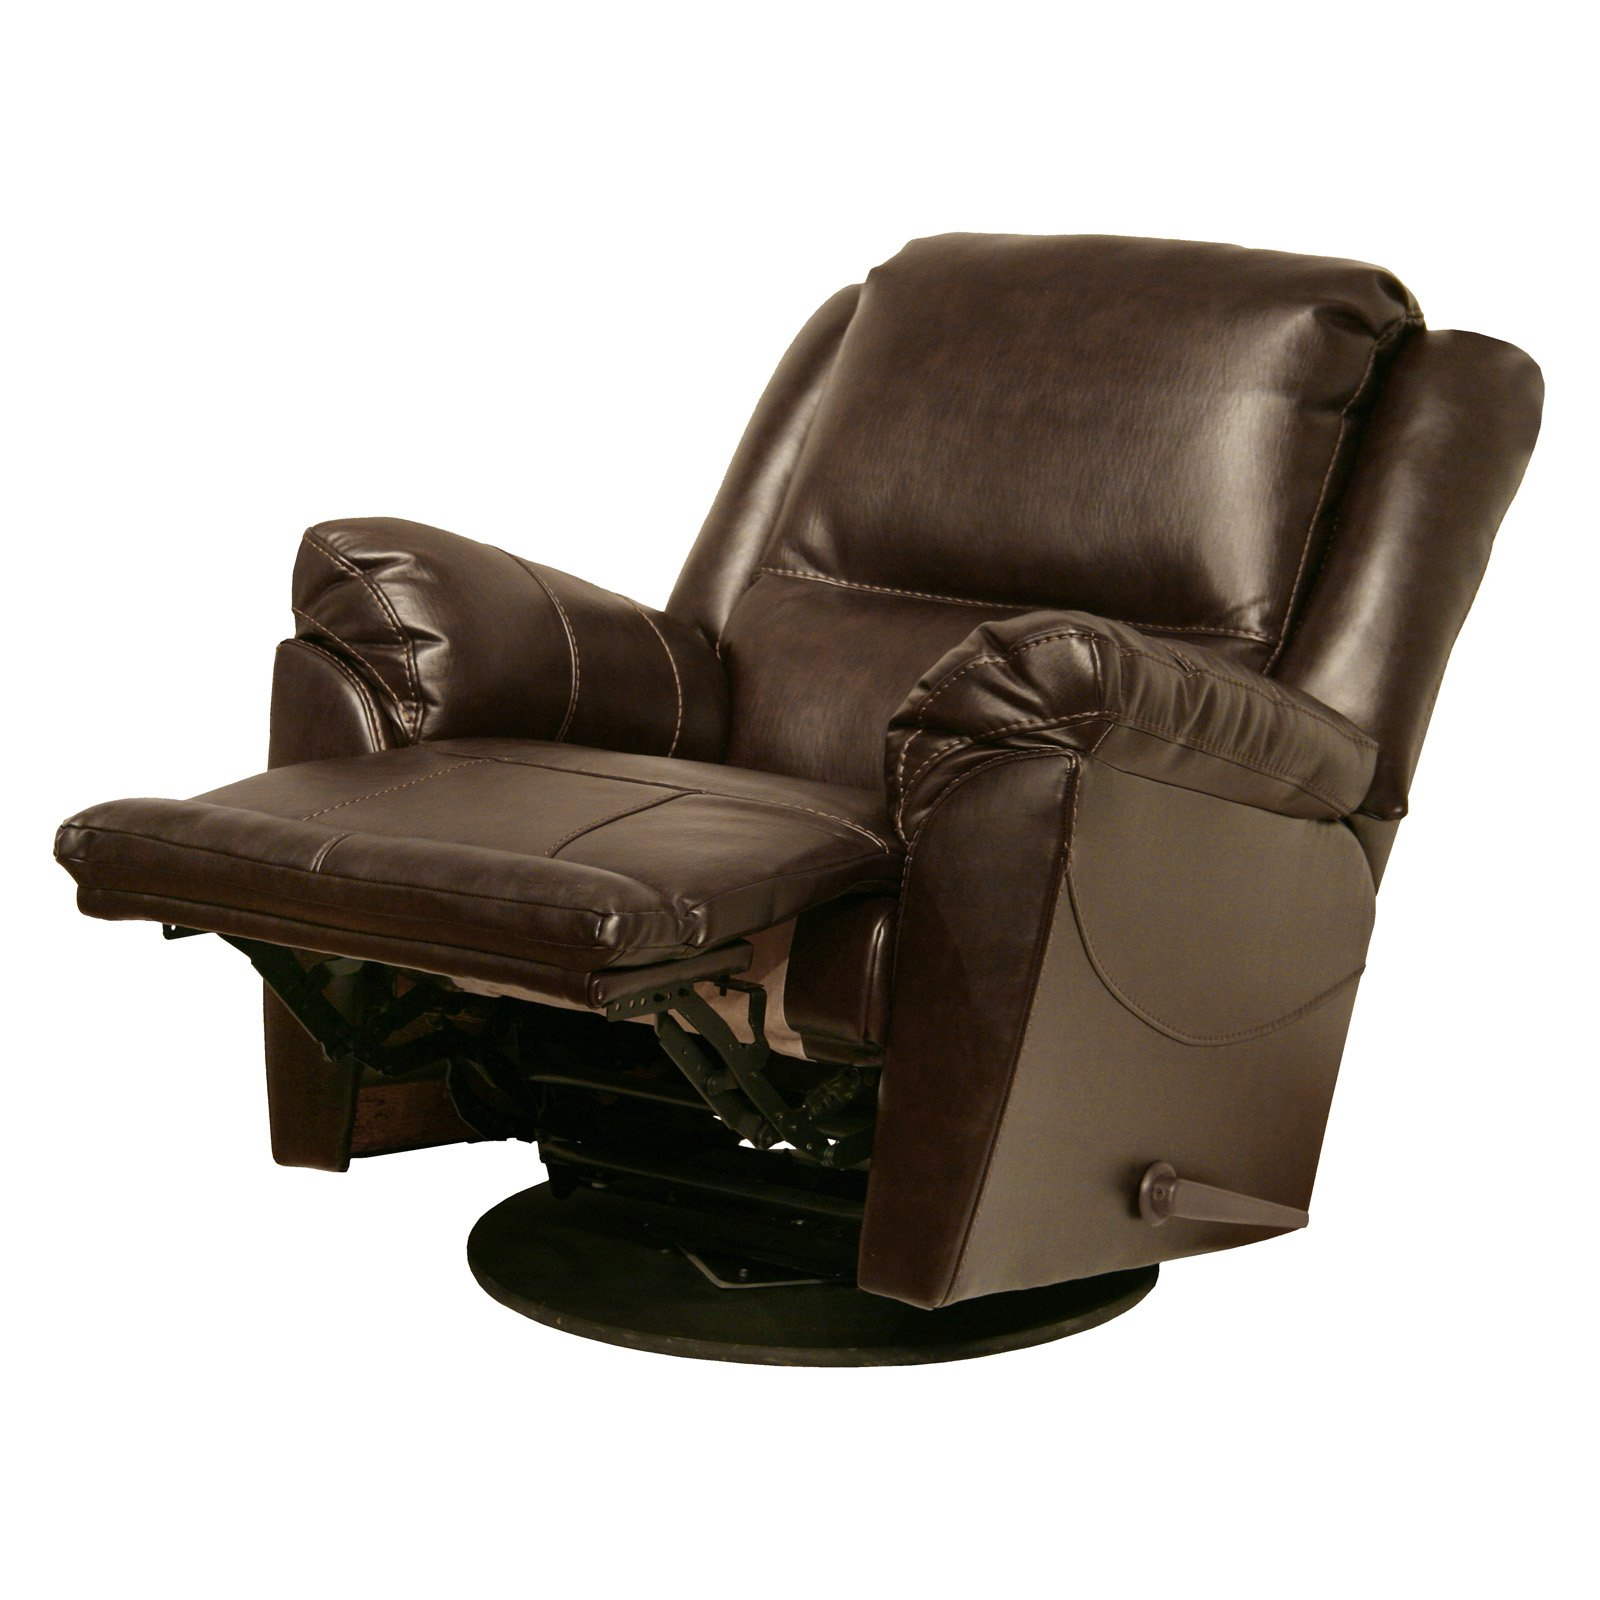 Swivel Tobacco Leather Chairs For Fashionable Catnapper Maverick Chaise Leather Swivel Glider Recliner – Walmart (Gallery 20 of 20)